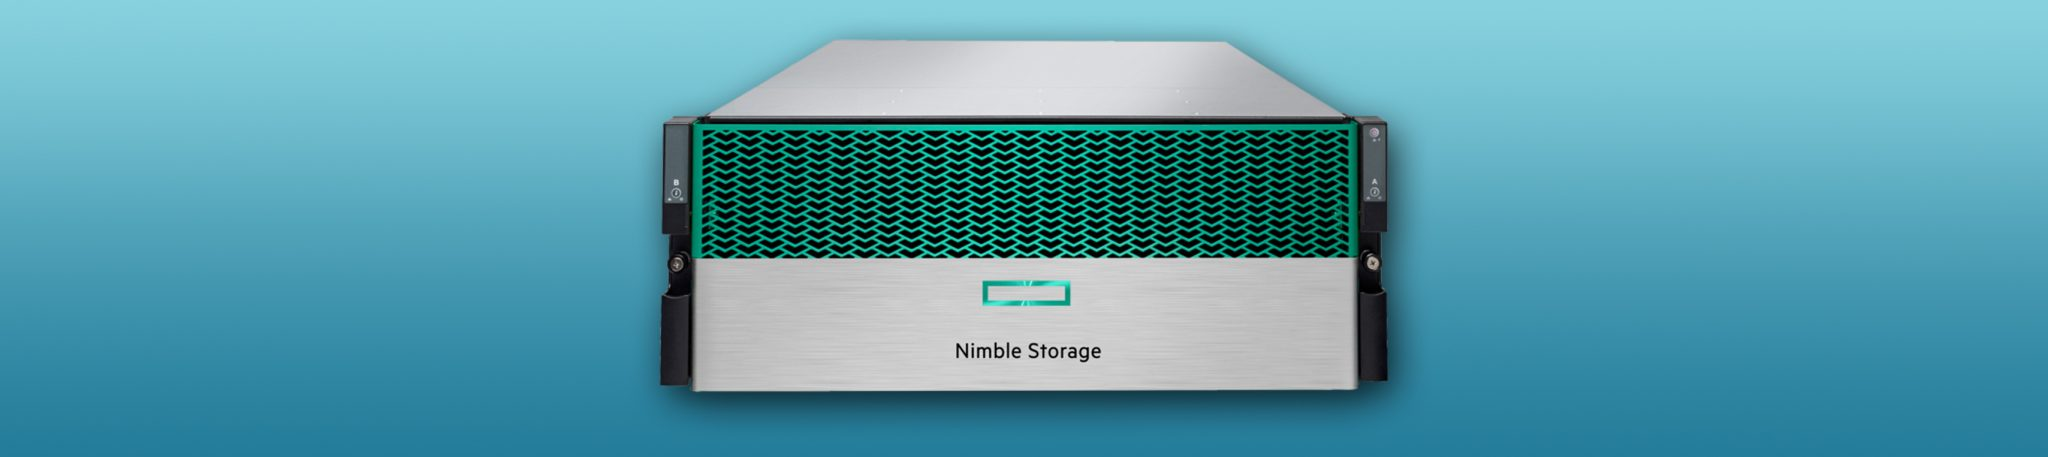 New generation HPE Nimble Storage All-Flash Arrays introduced